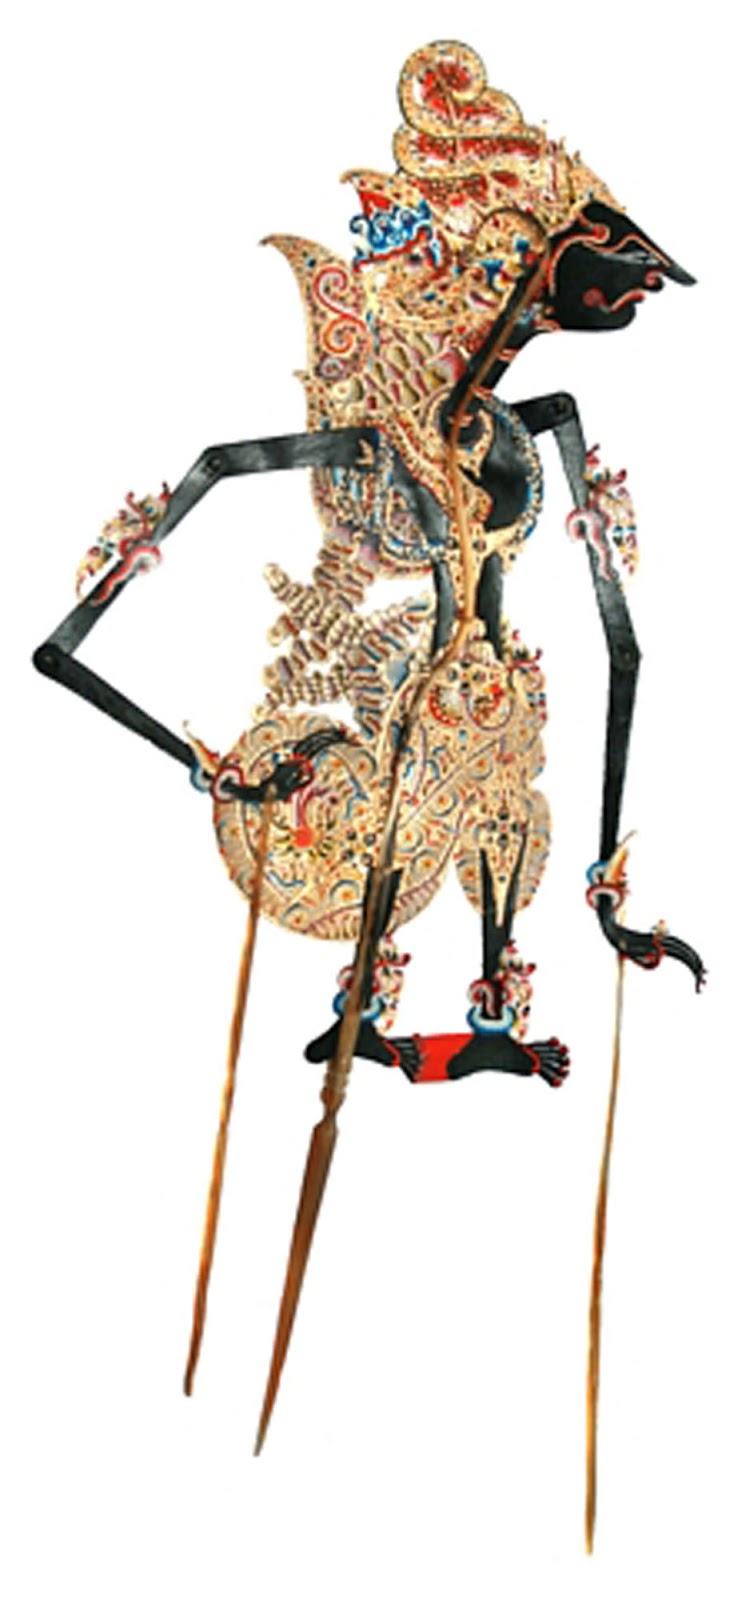 Antique indonesian shadow puppets wayang kulit buffalo leather antique indonesian shadow puppets wayang kulit buffalo leather wisnu futurezet pronofoot35fo Gallery